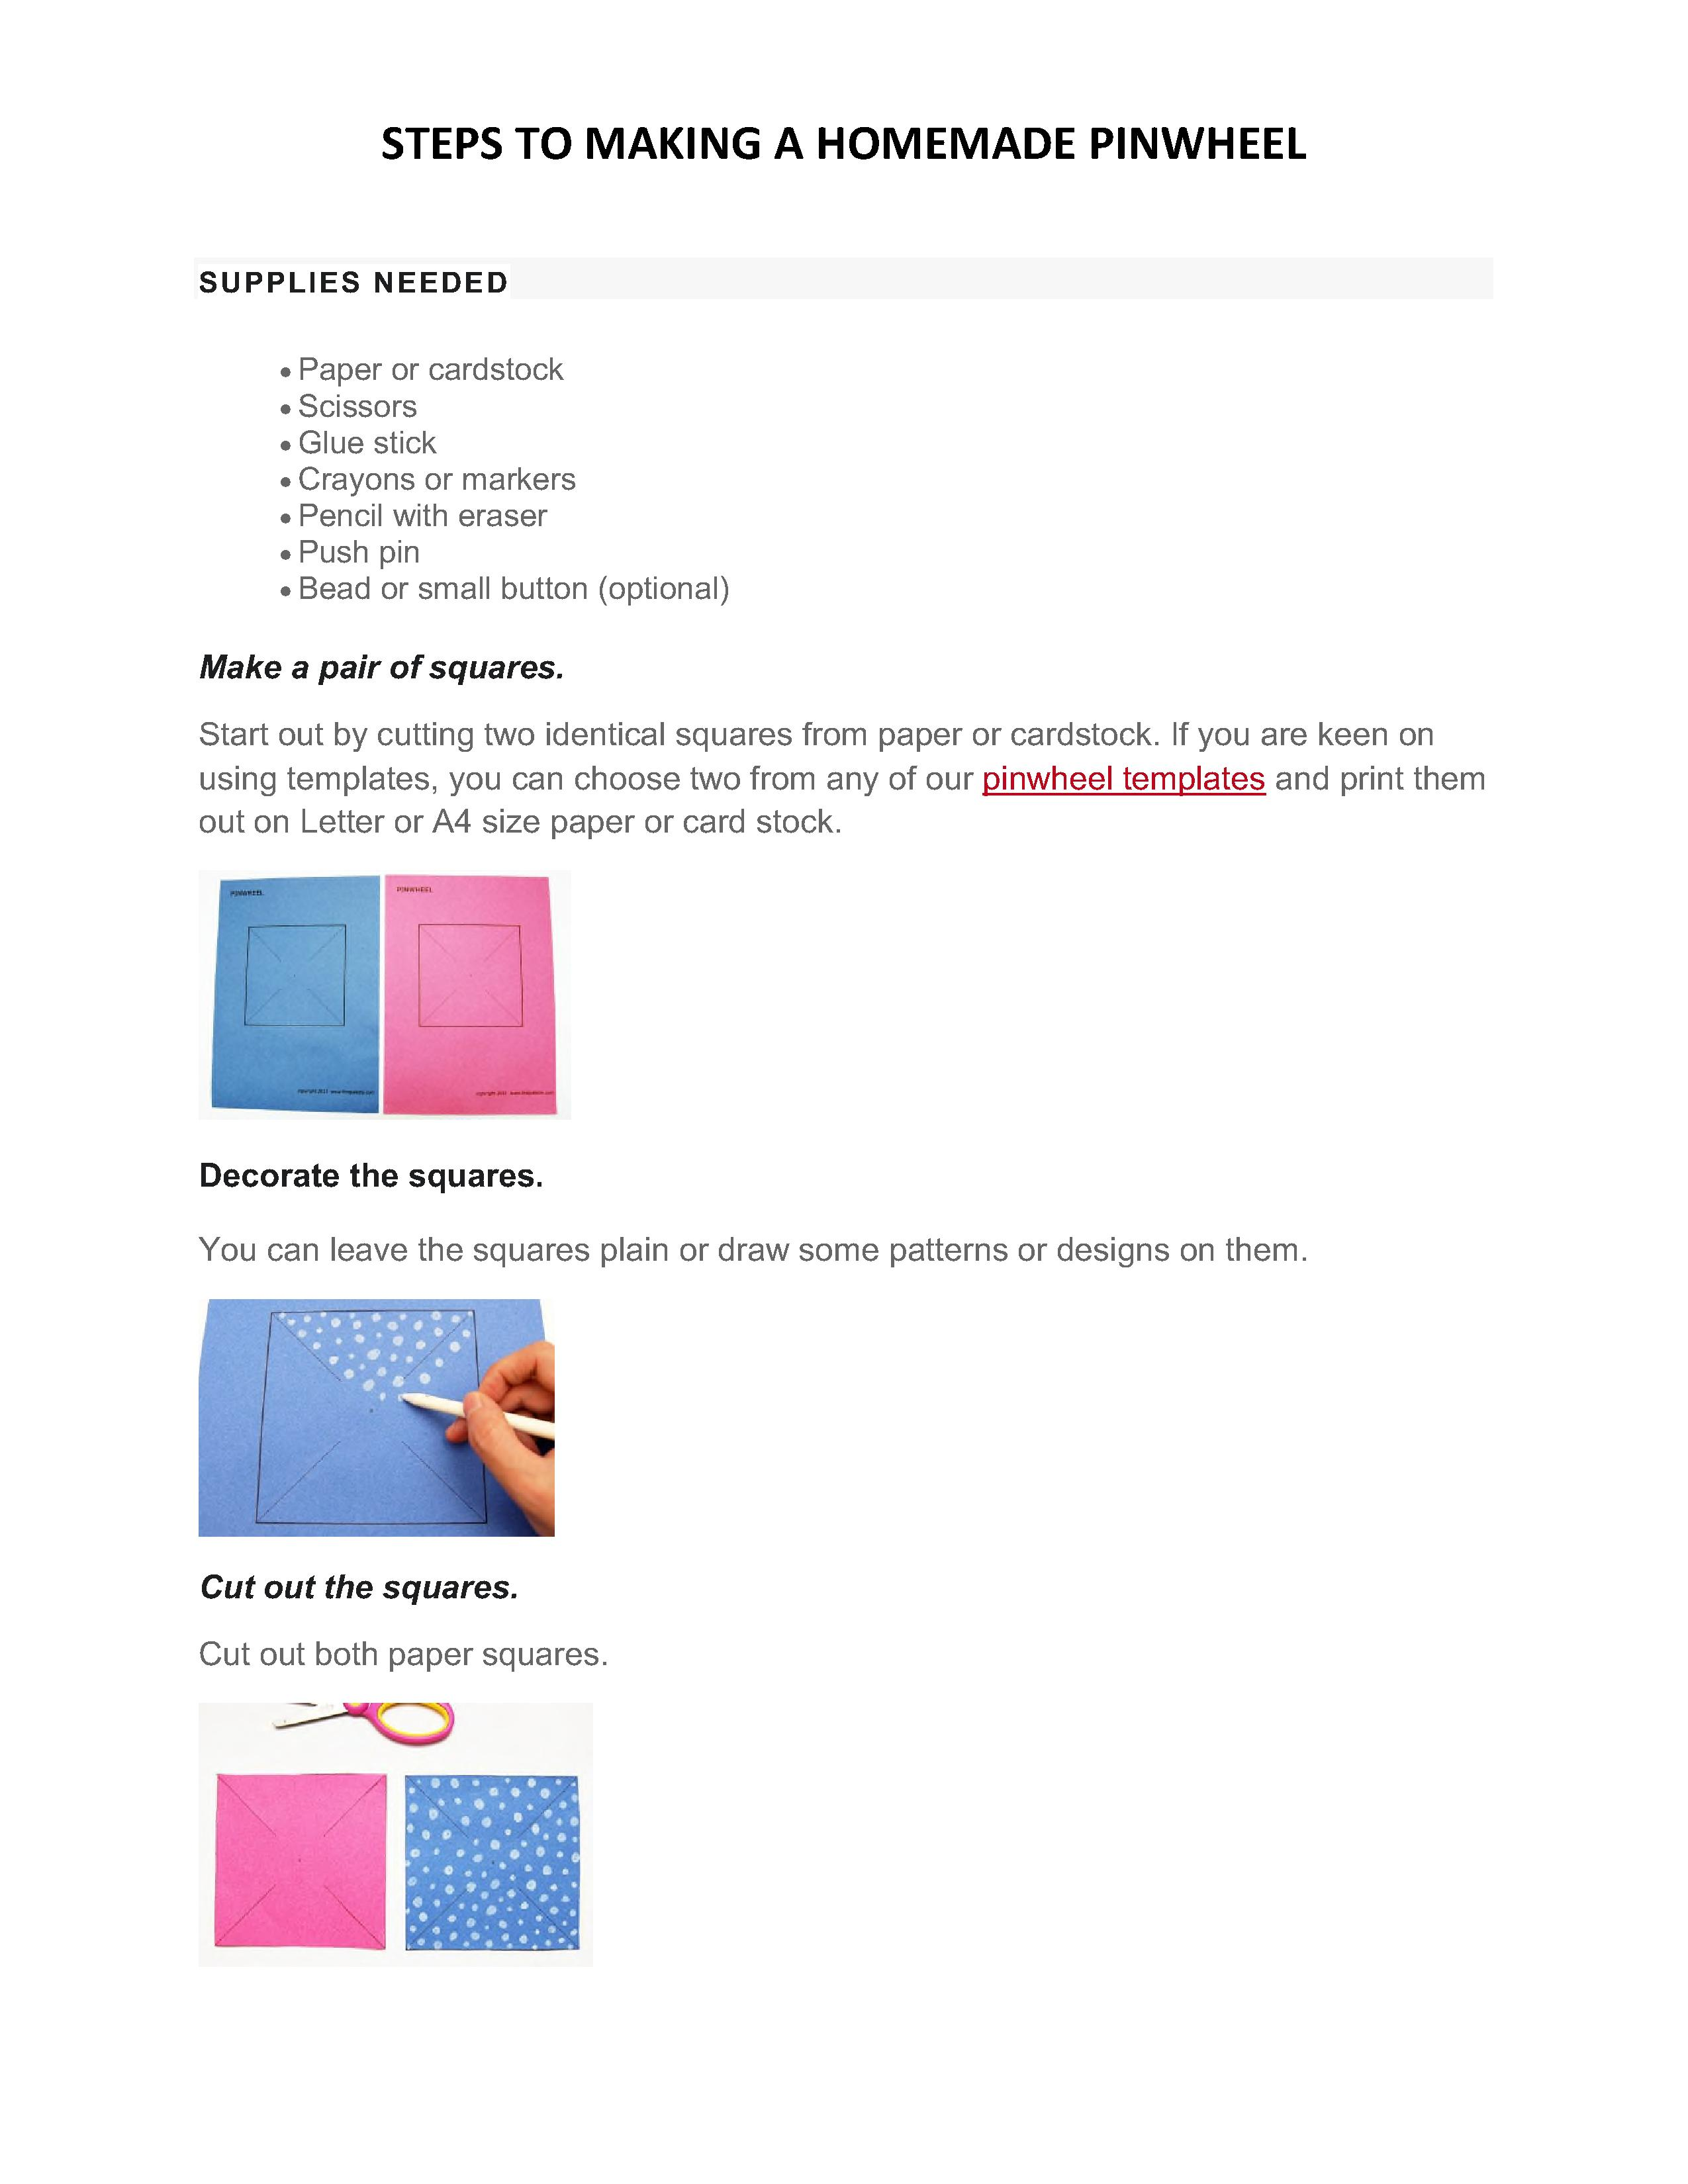 Pinwheel instructions 1